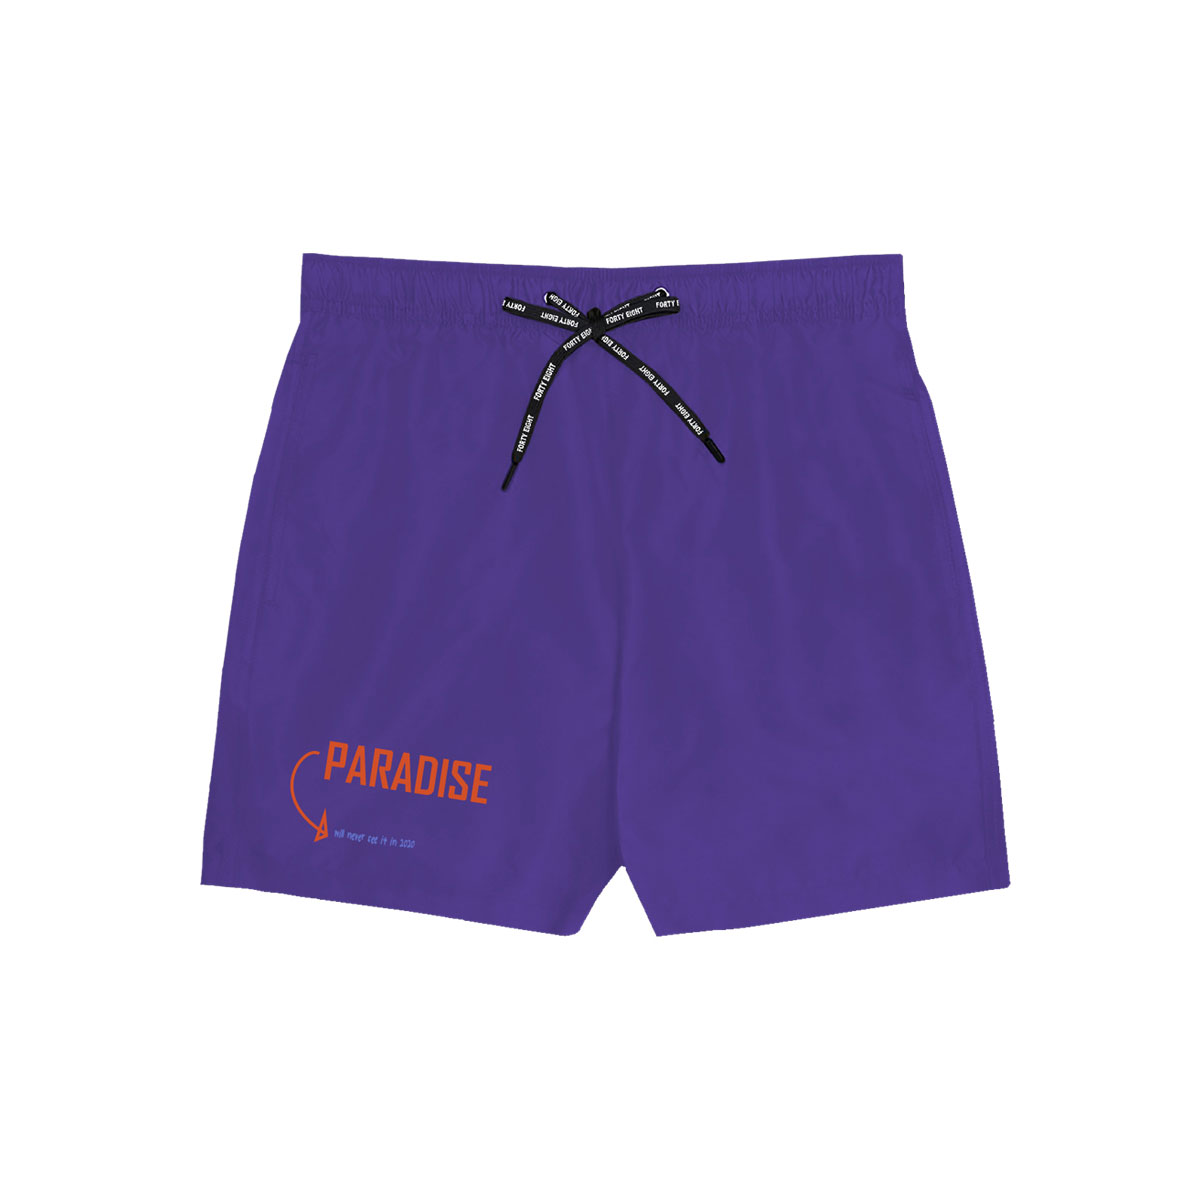 Paradise Swimming Short - Purple